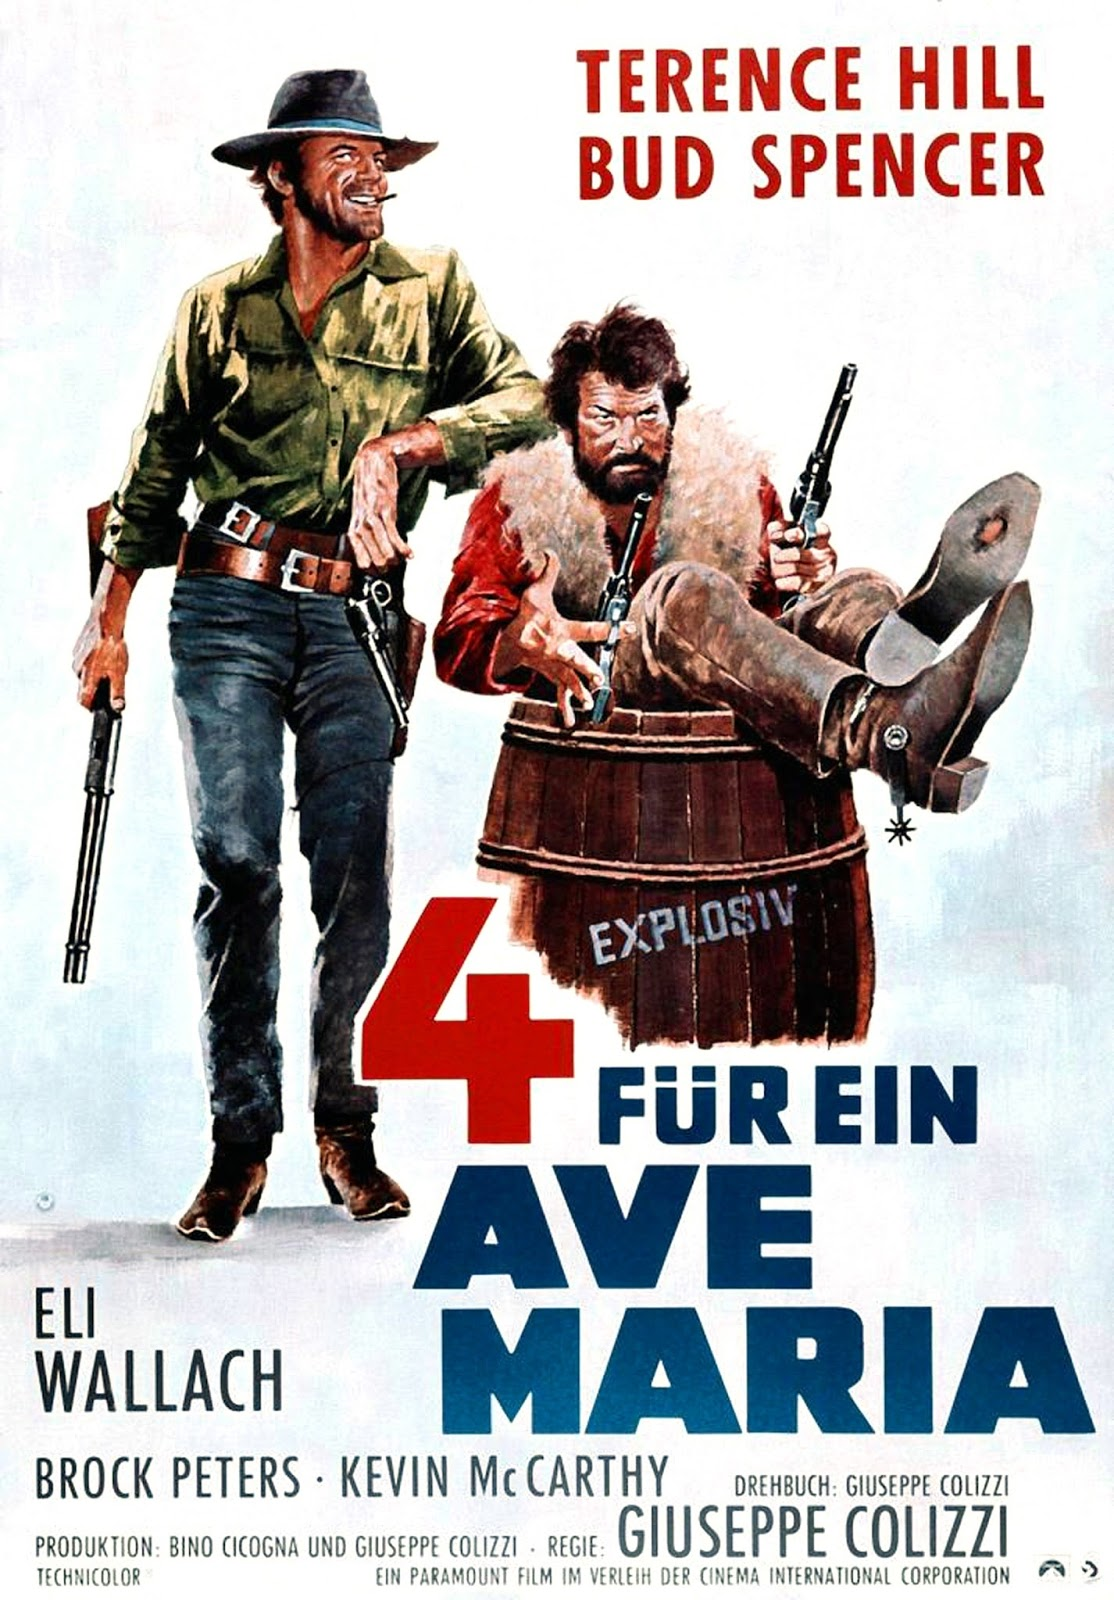 Filmes Bud Spencer E Terence Hill Dublado pertaining to le plein de super: terence hill & bud spencer dans les 4 de l'ave